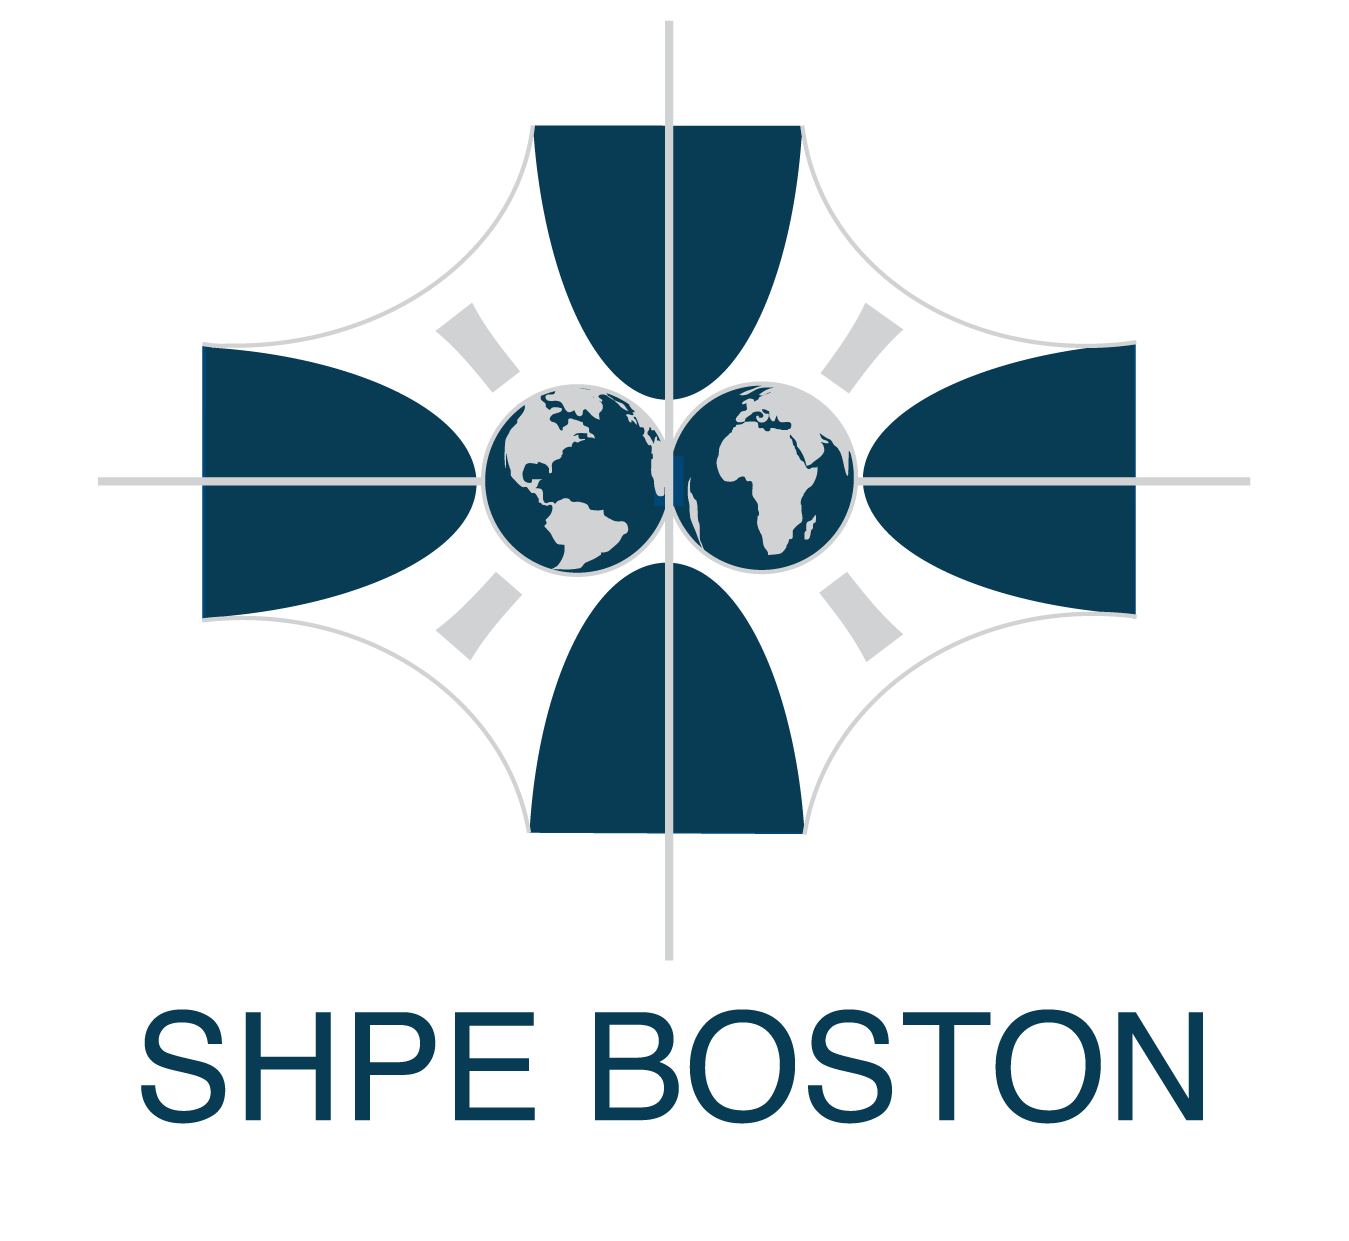 SHPE_Boston_logo.png